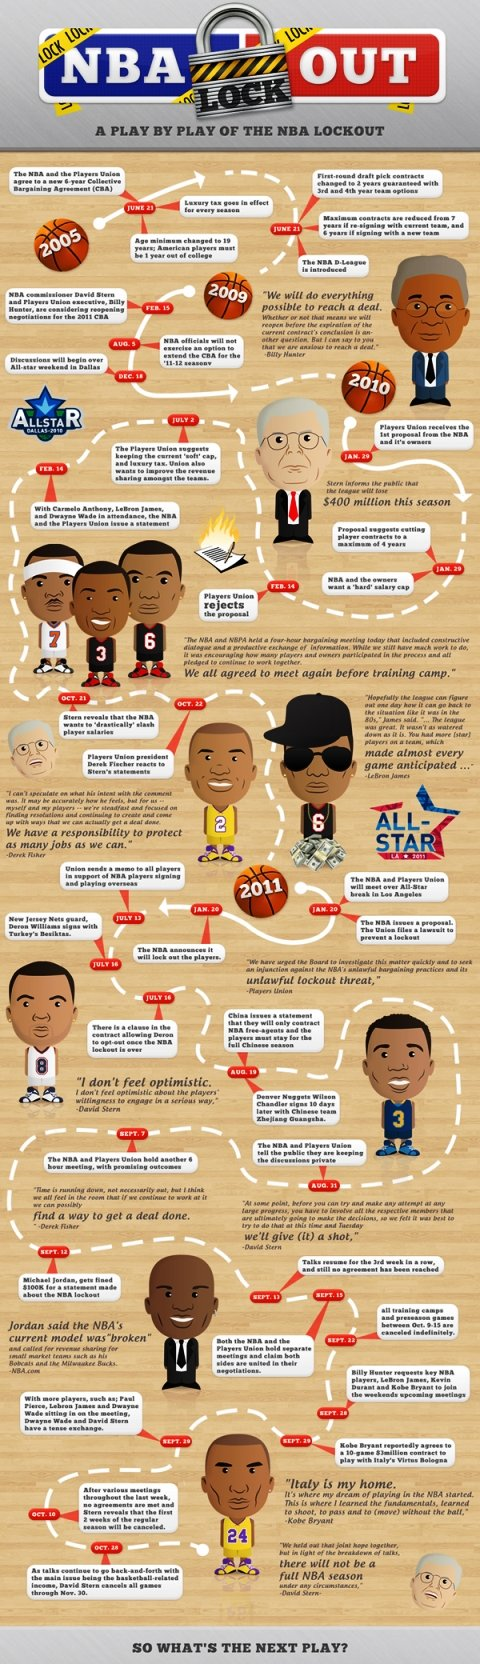 a play by a play of the NBA lockout #infographic